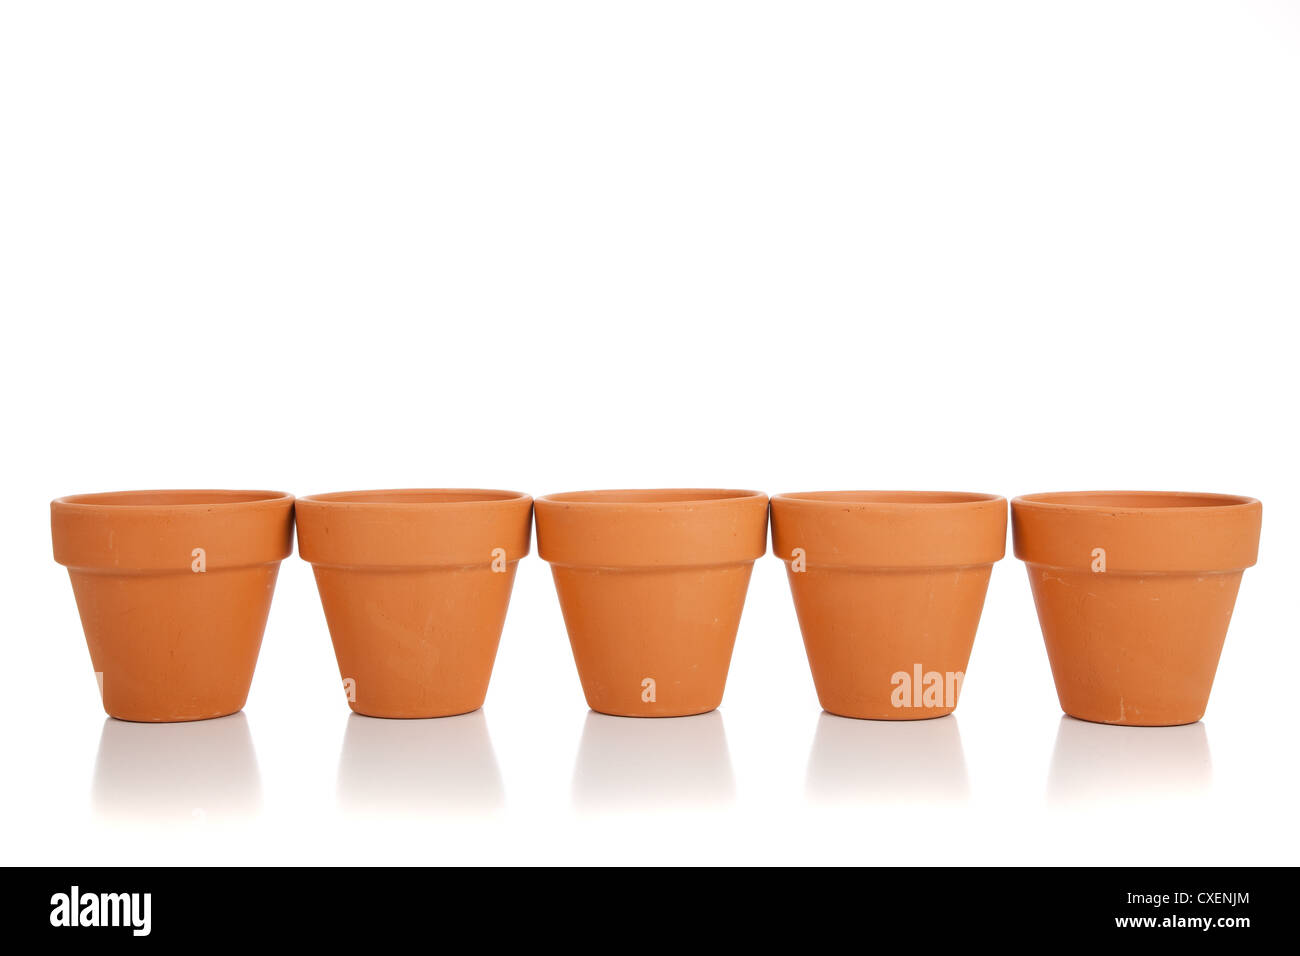 A row of orange clay pots on a white background - Stock Image